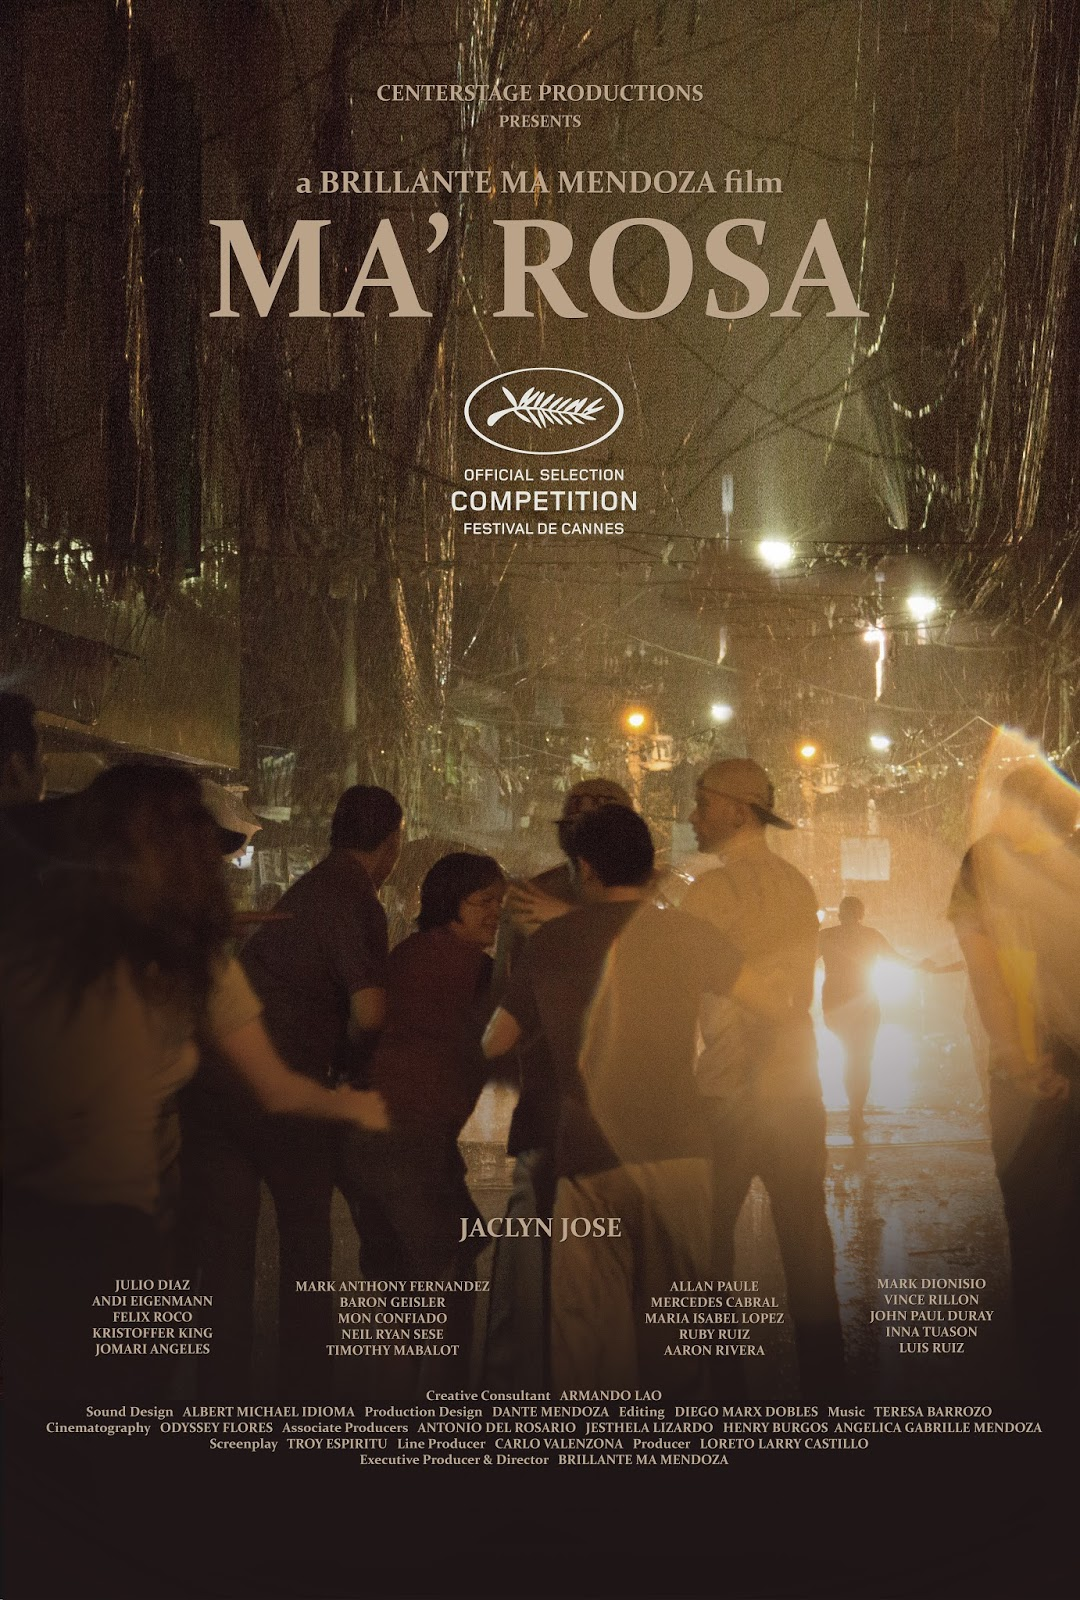 Ma 39 rosa de brillante mendoza en avant premi re au for Exterieur nuit film